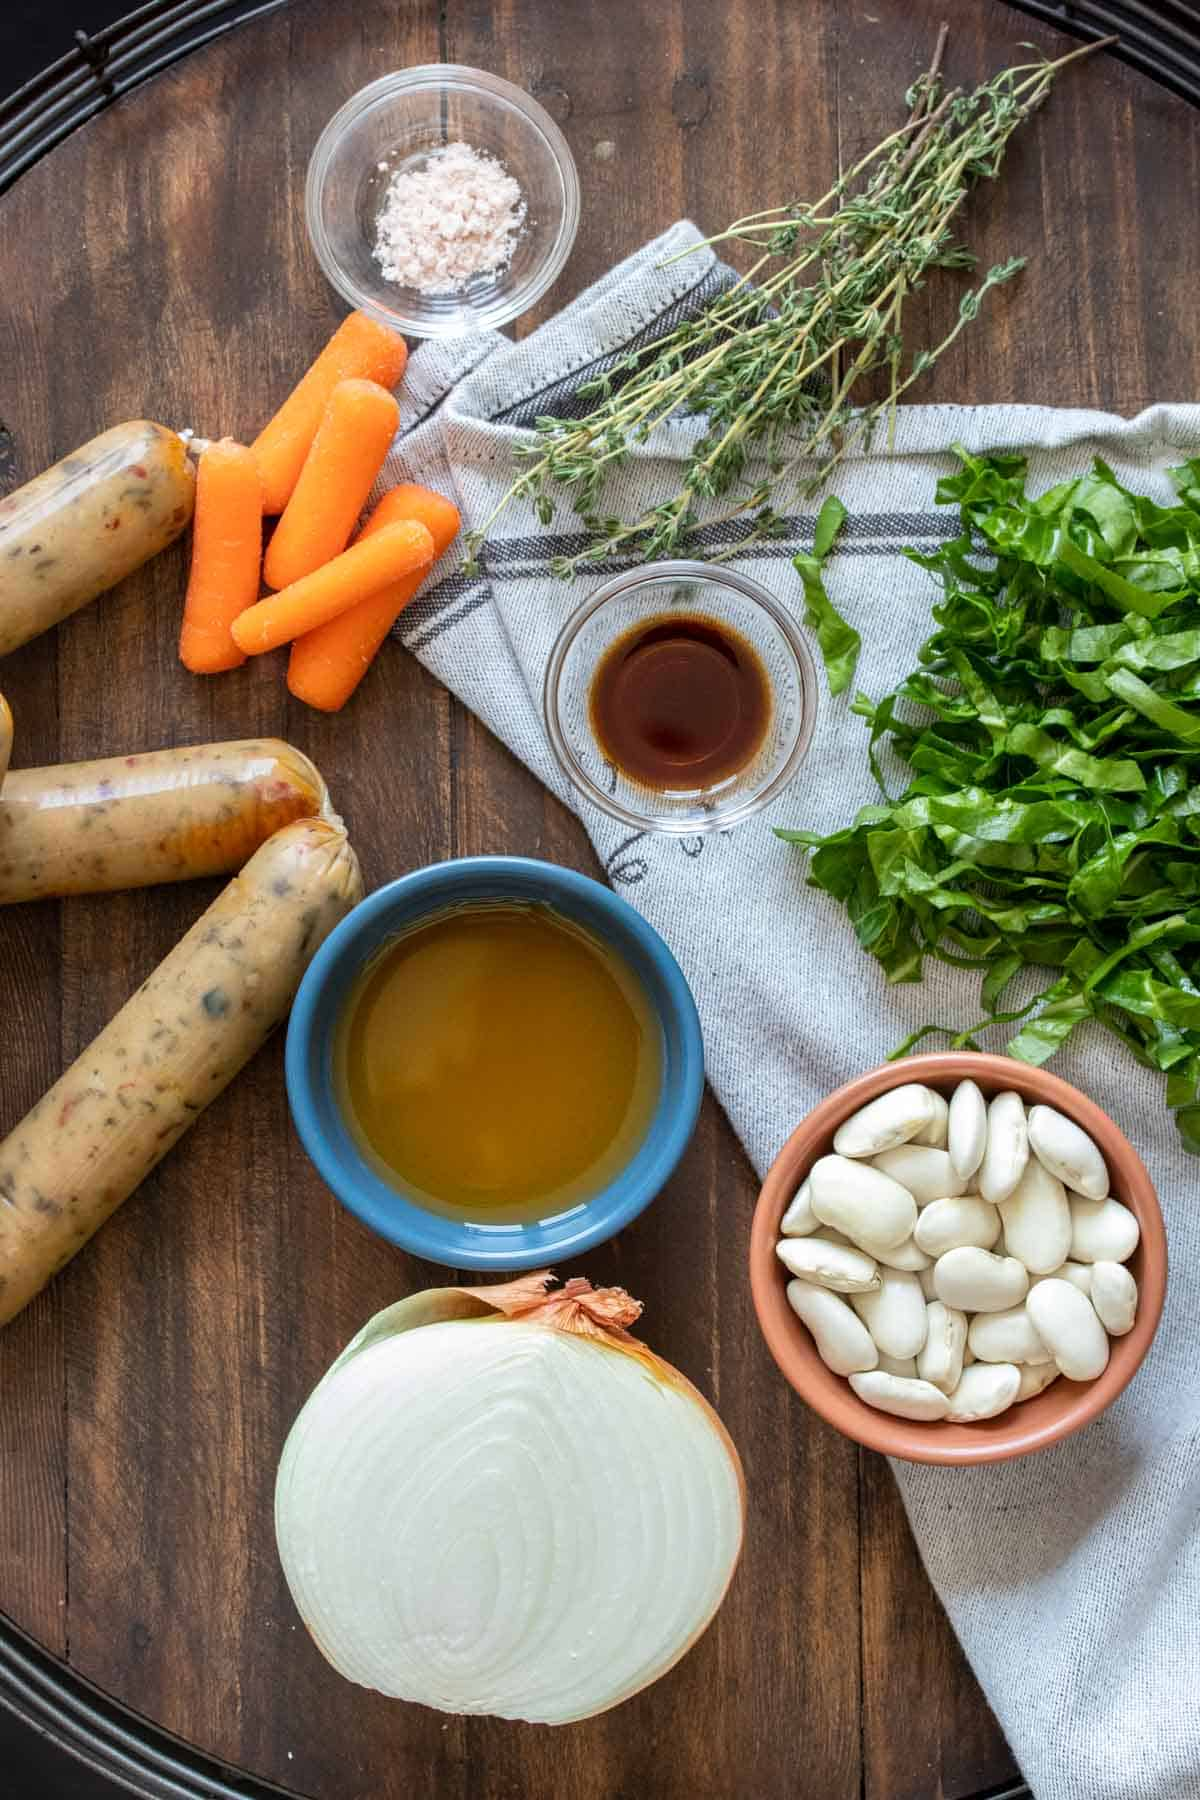 Front view of an instant pot on a wooden tray